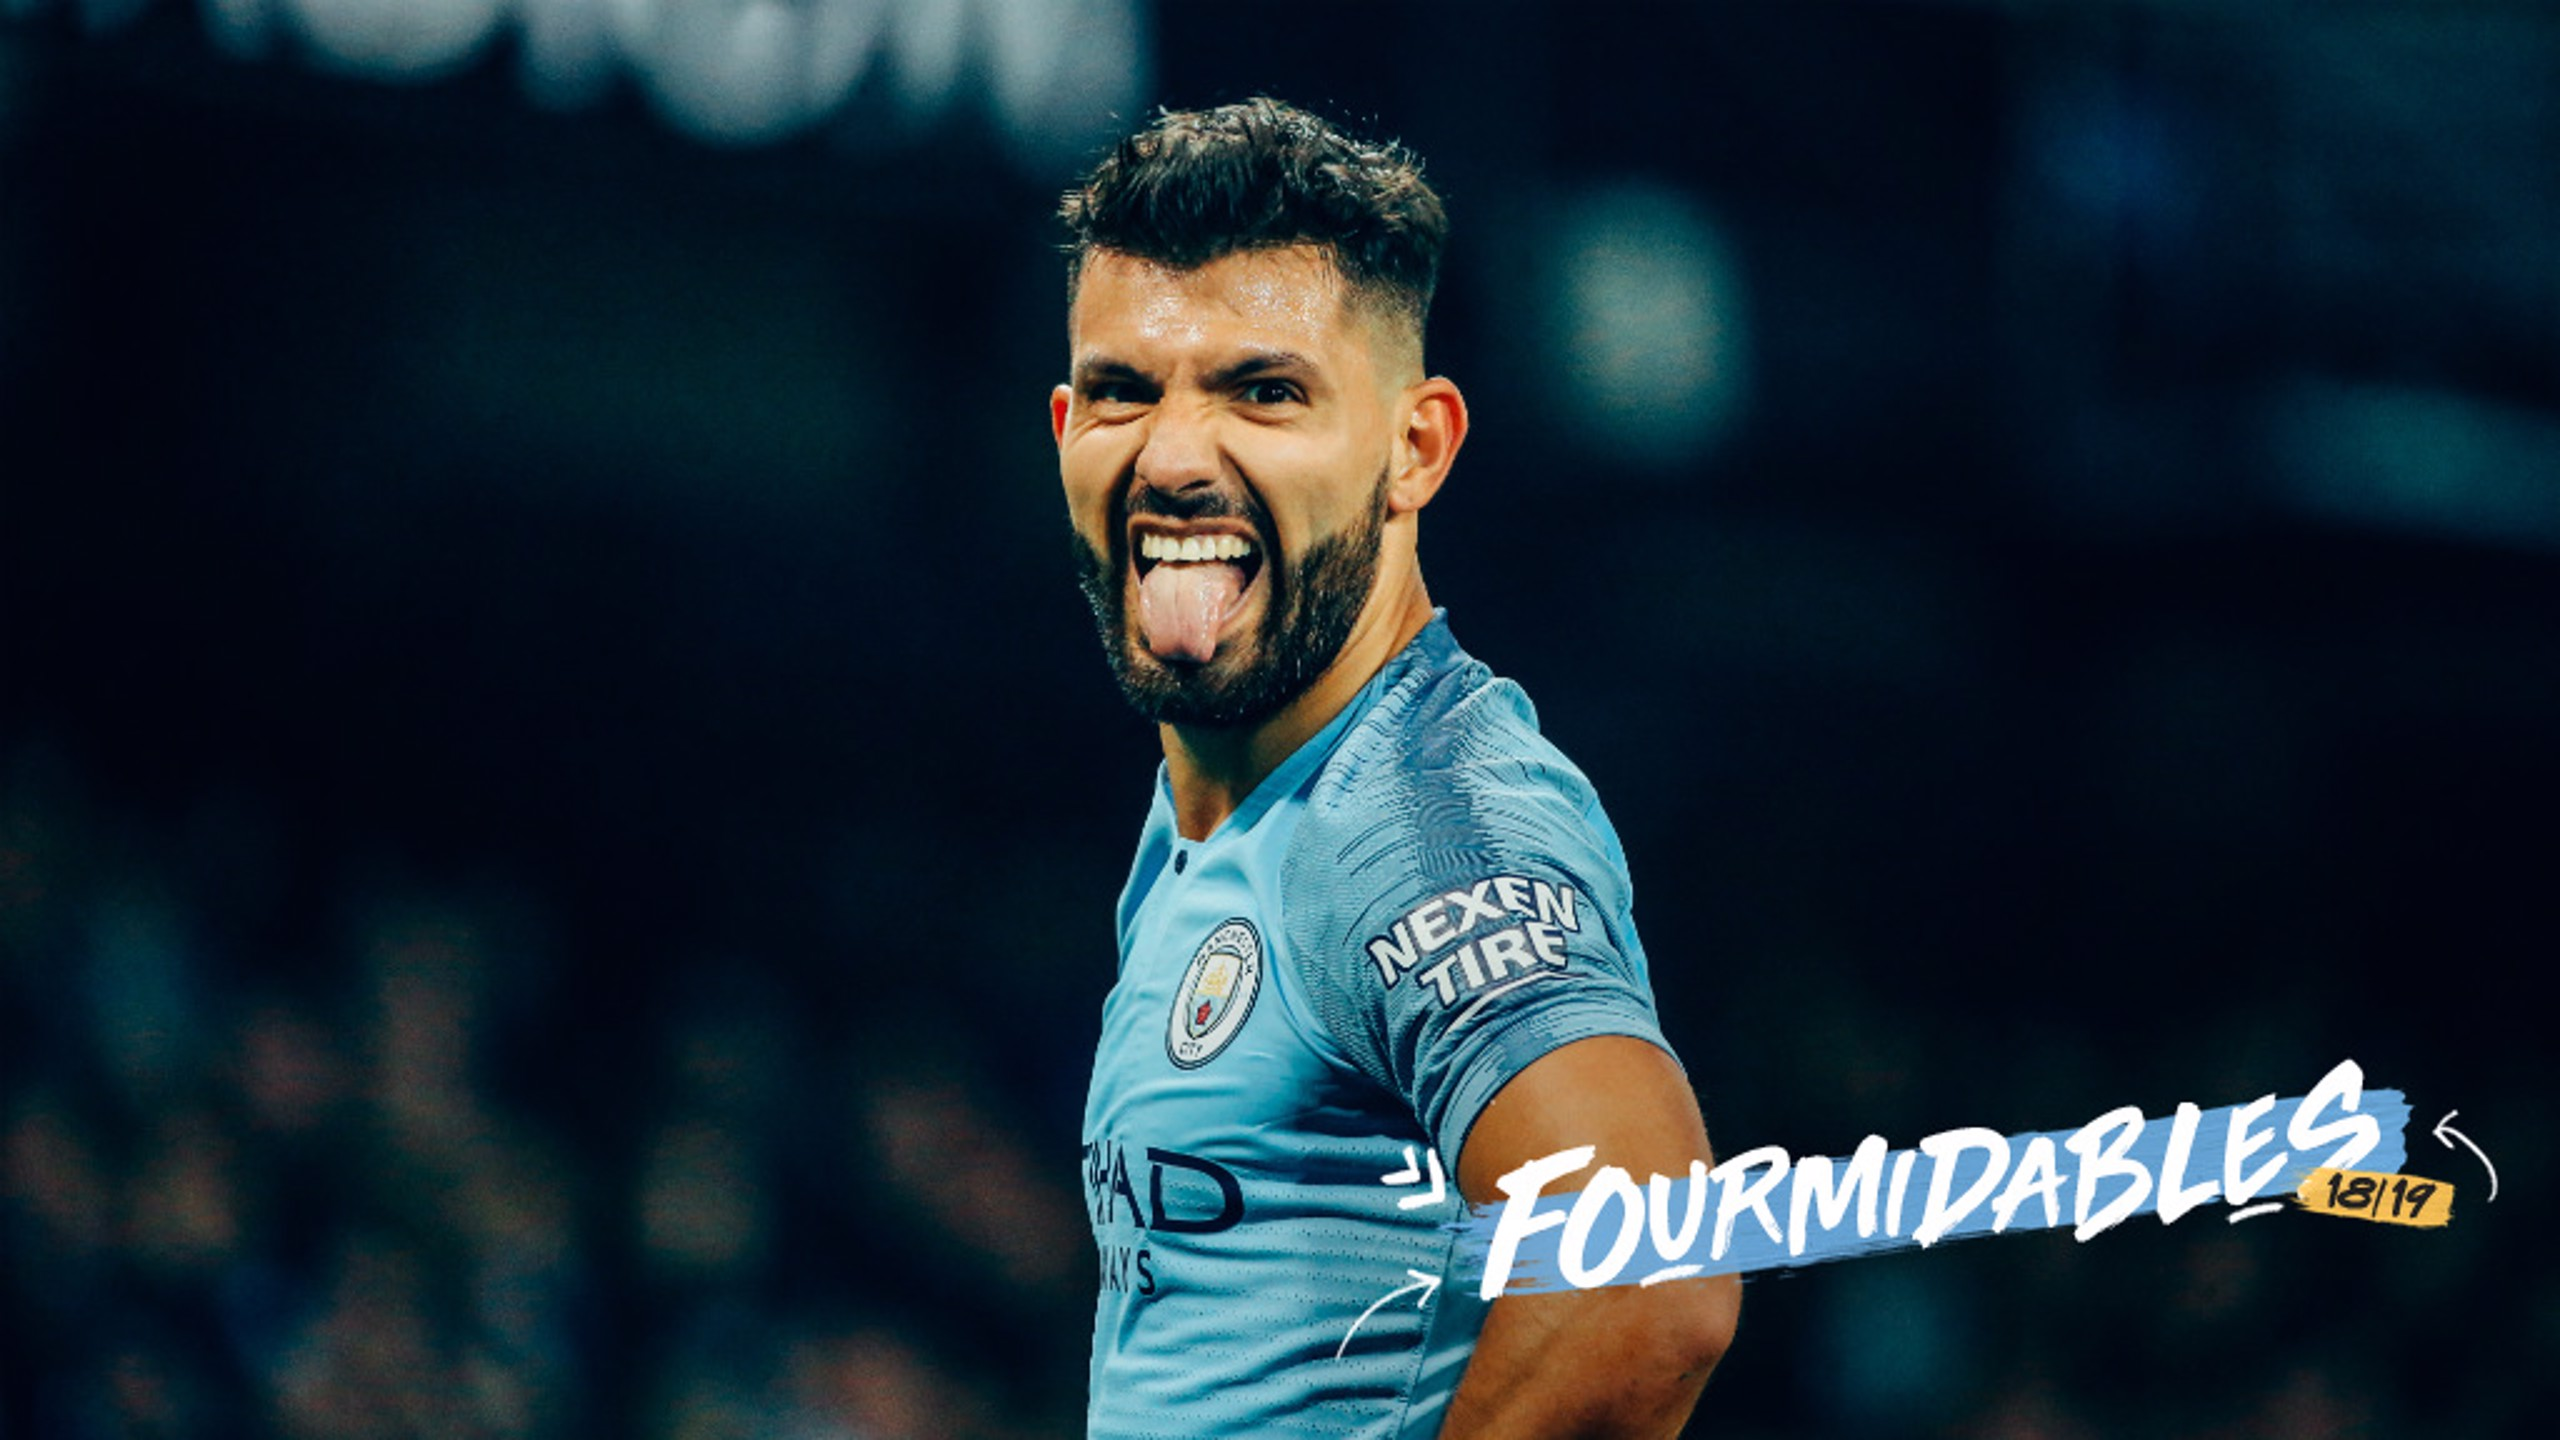 GOT YA: Sergio Aguero spots our camera.